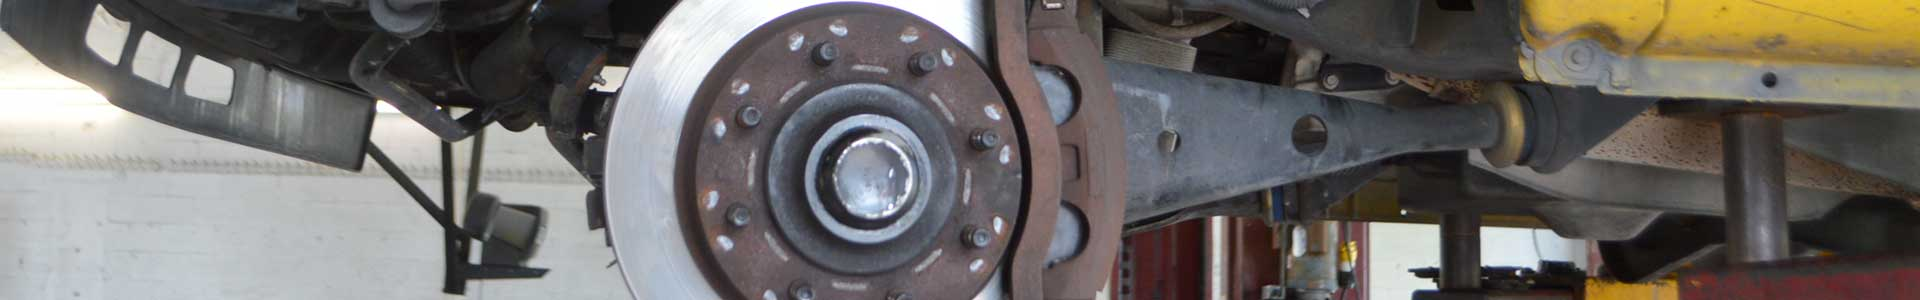 Brake-Inspection-for-Your-Safety